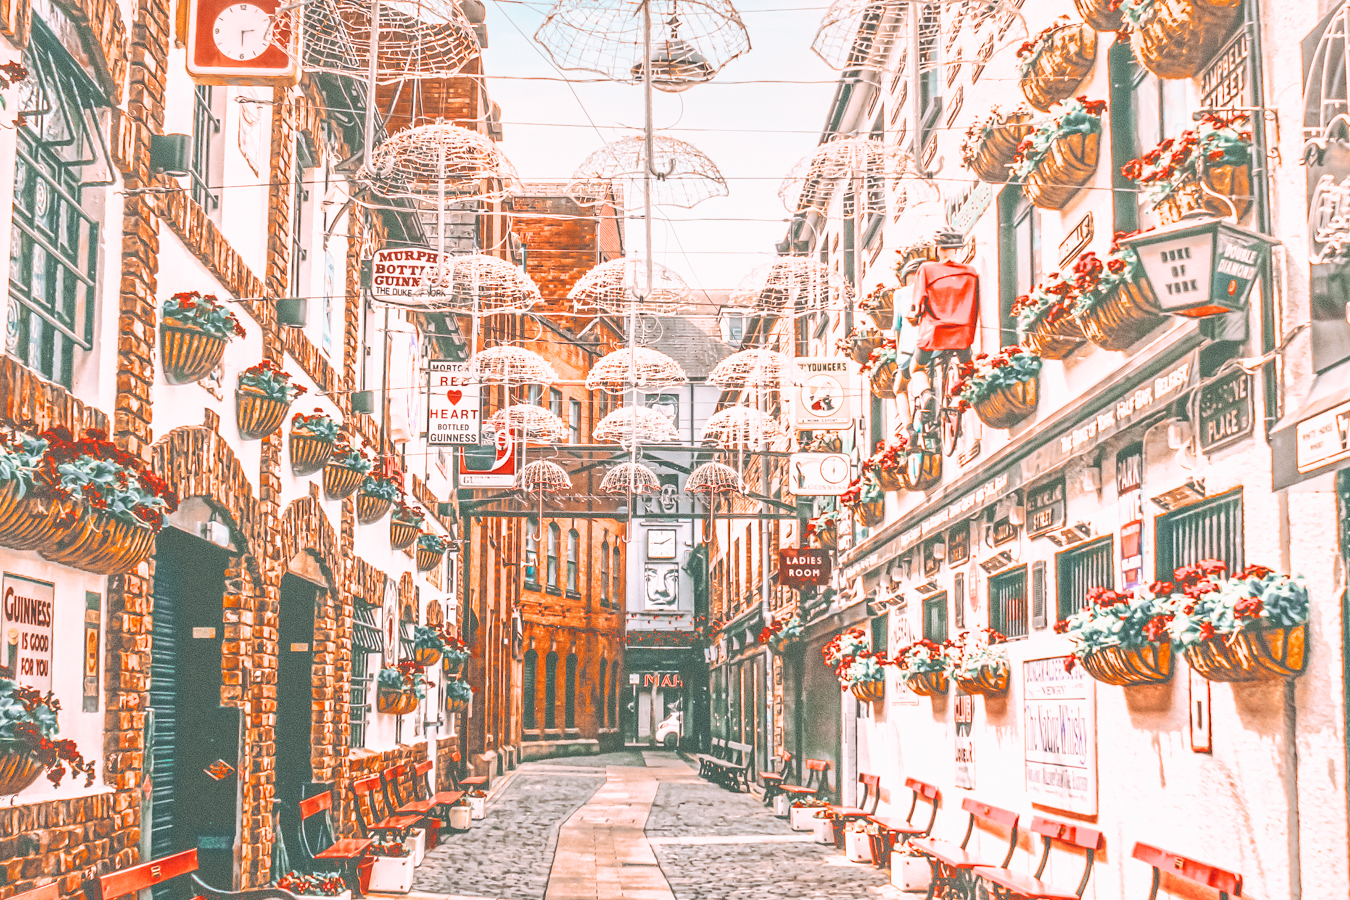 Street with decorations